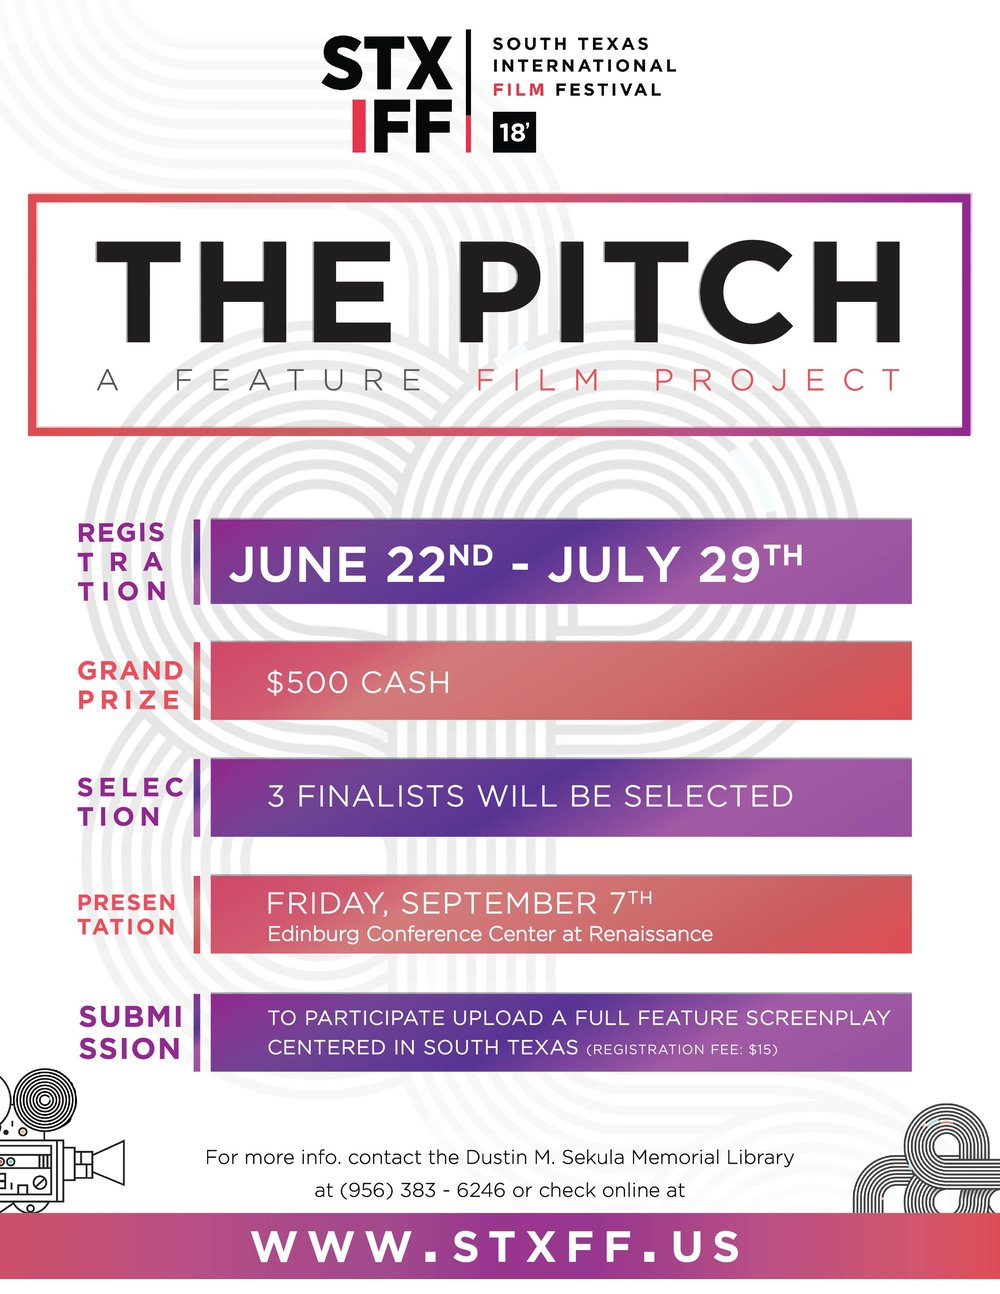 thepitch_update-01.jpg